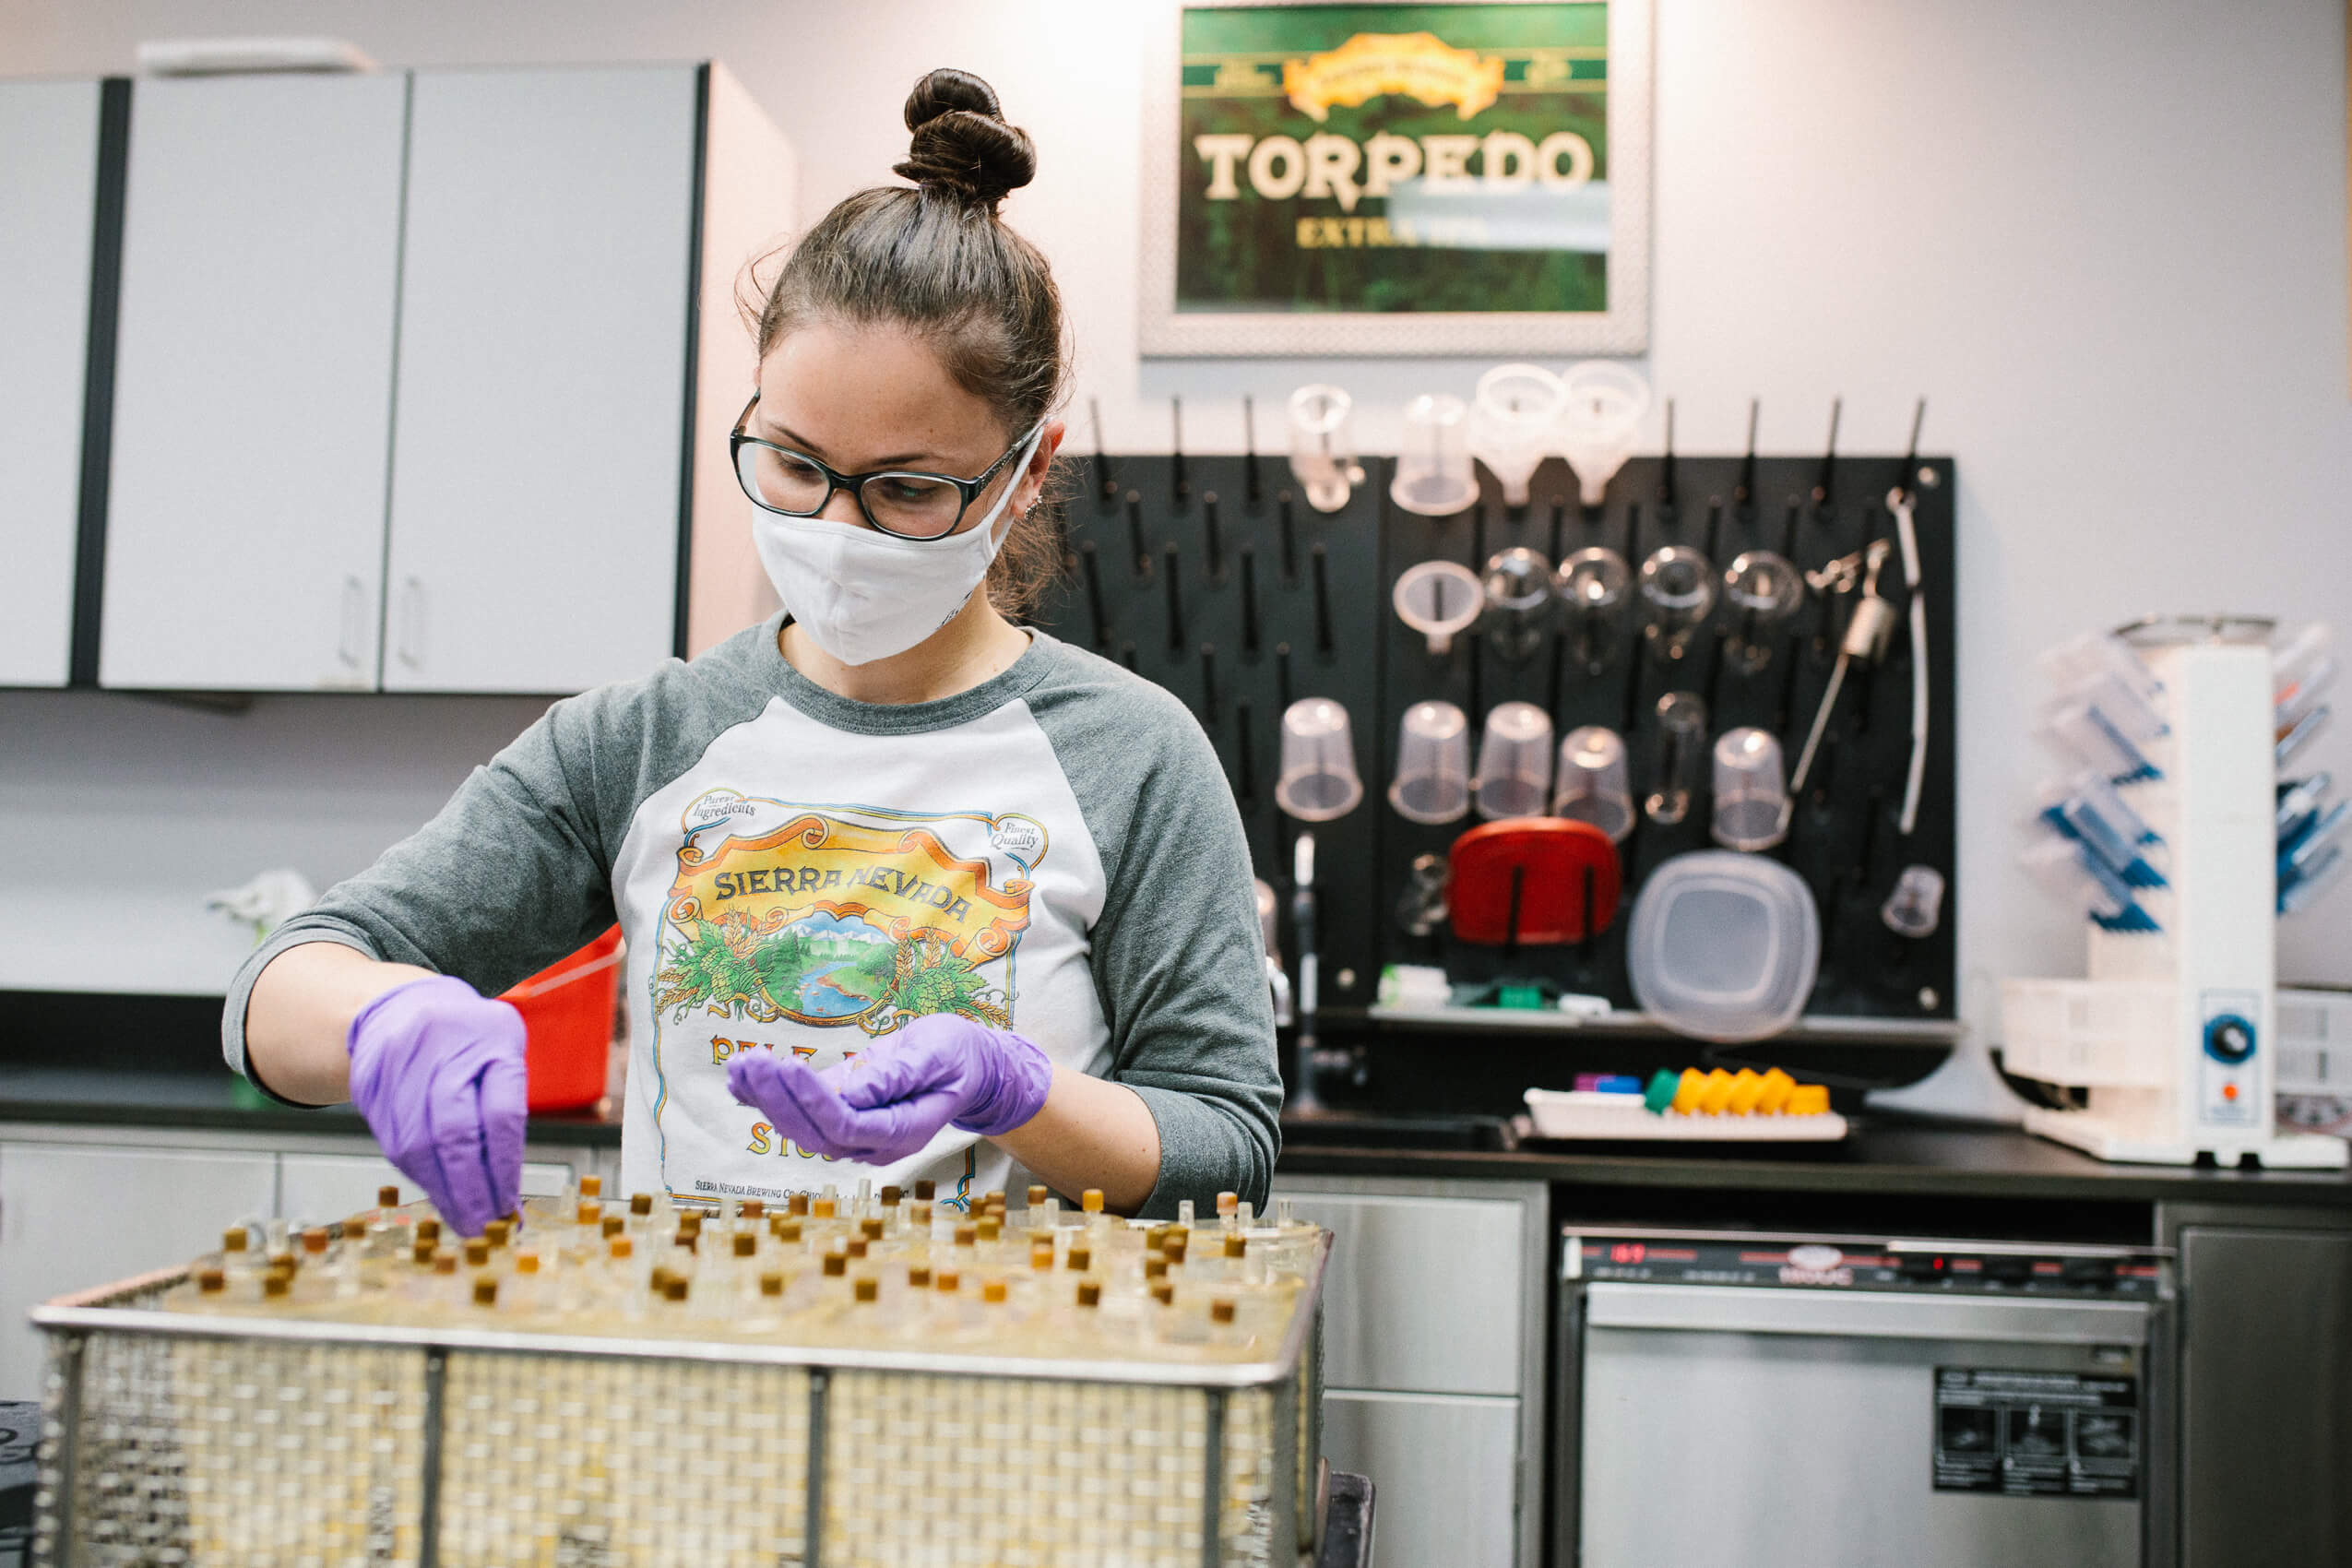 Sierra Nevada Brewing Co. announced they will help Enloe Medical Center perform COVID-19 testing by producing viral transport medium in its brewery lab.